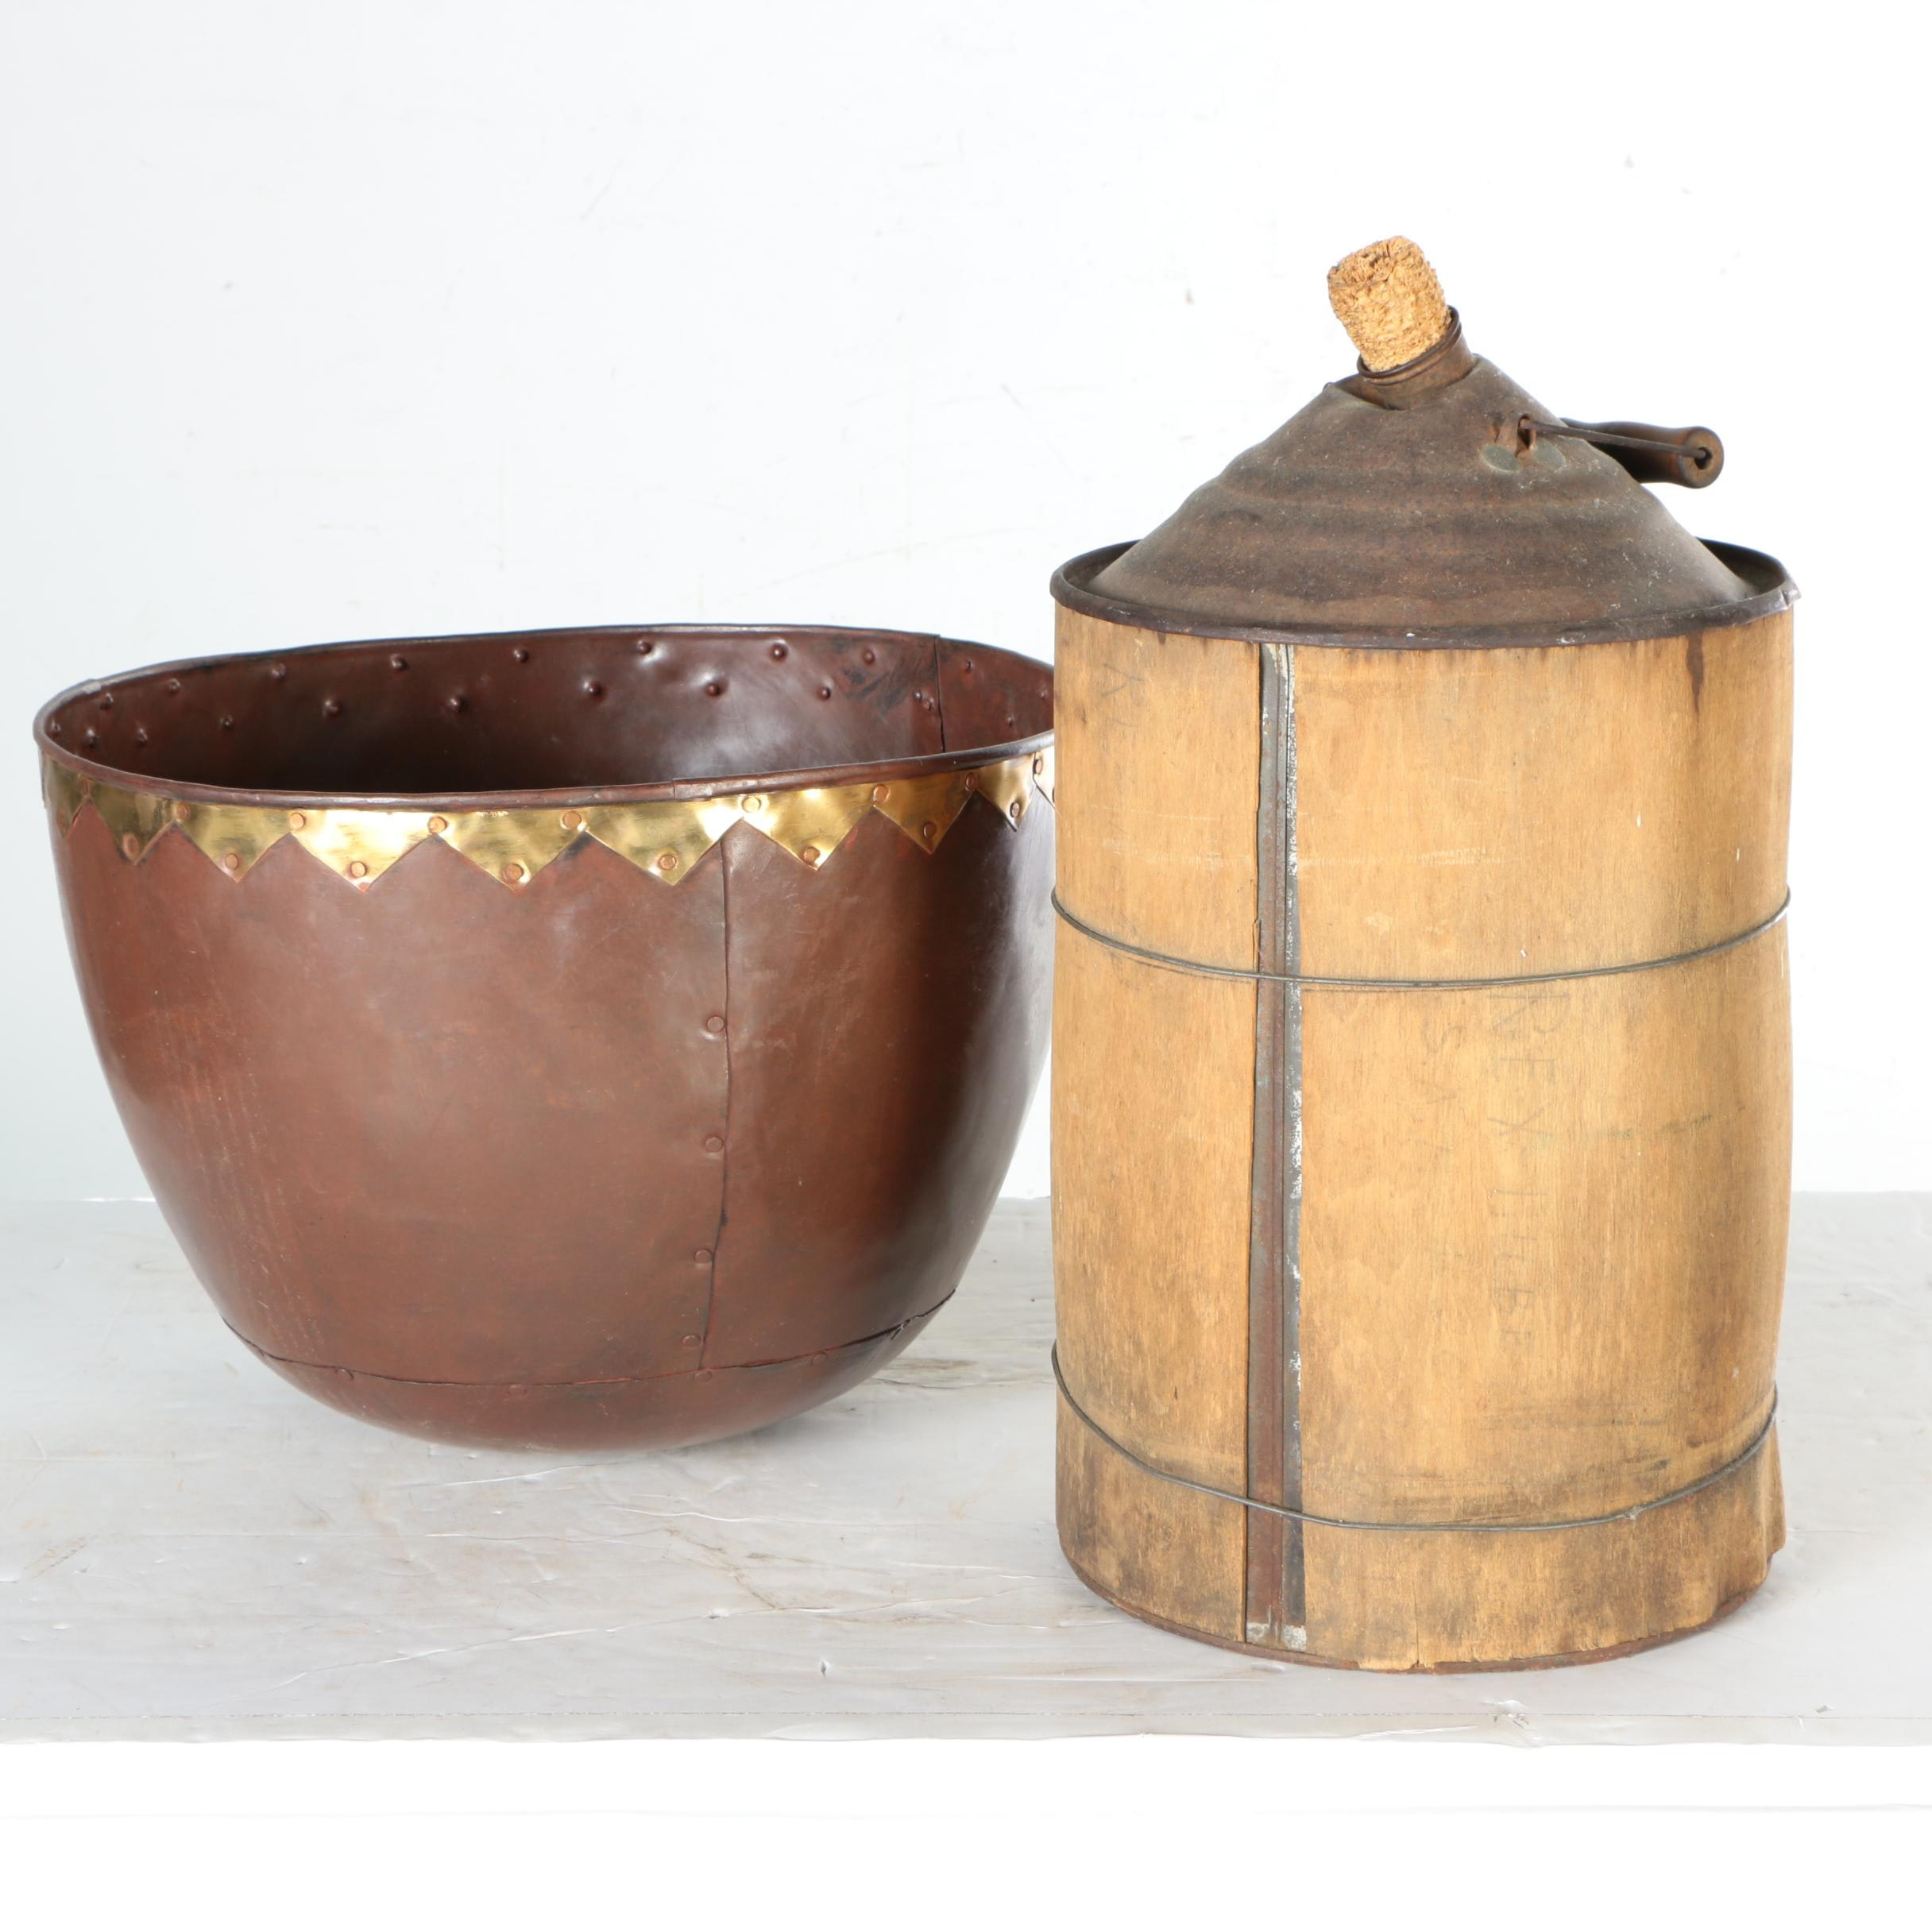 Wooden Water Container with Metal Bowl